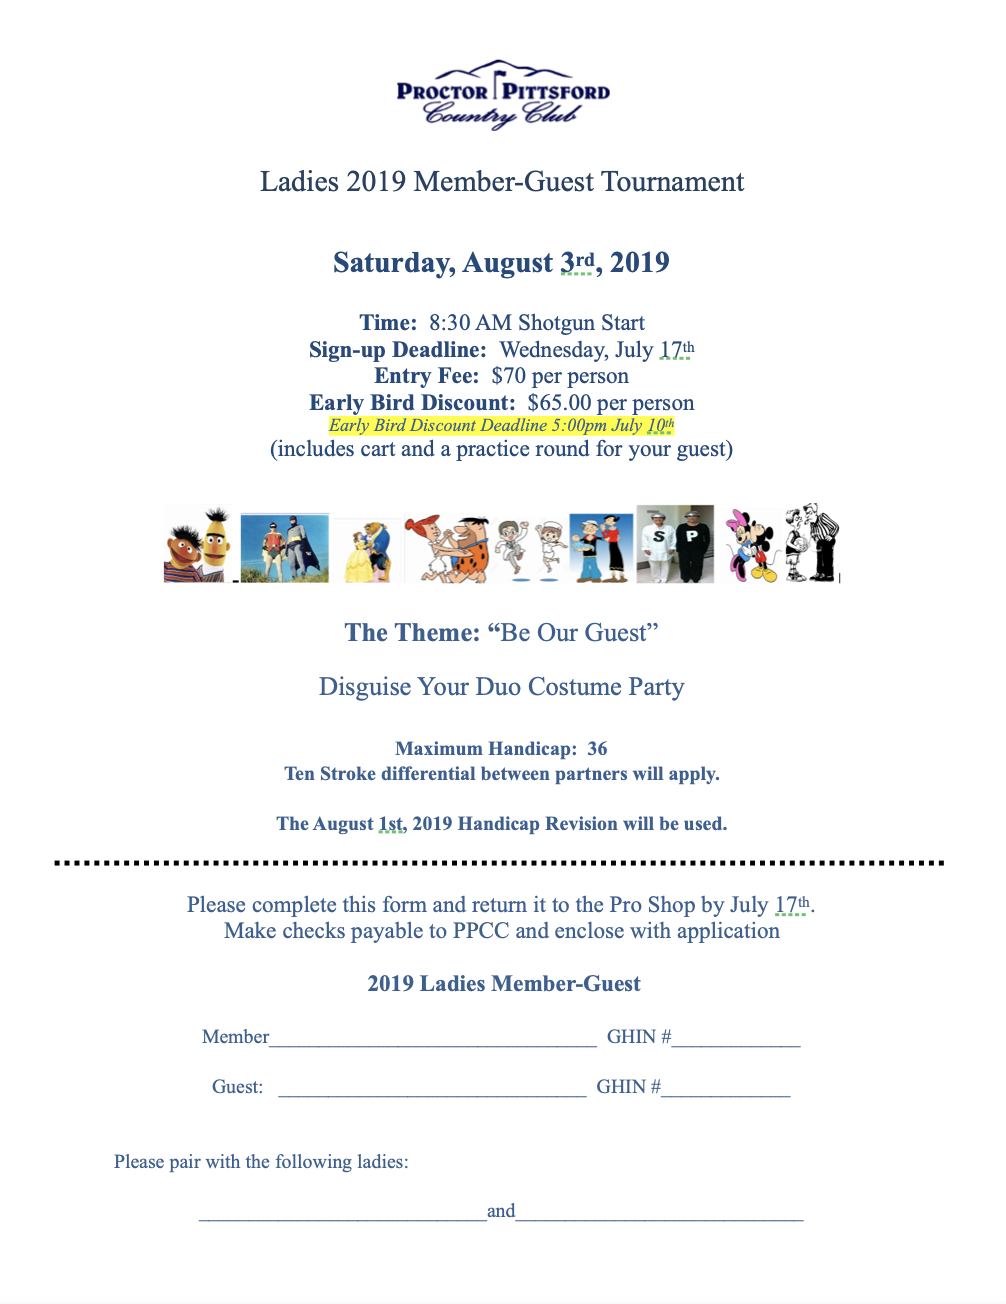 2019-Ladies Member-Guest Tournament-Applications Now Available